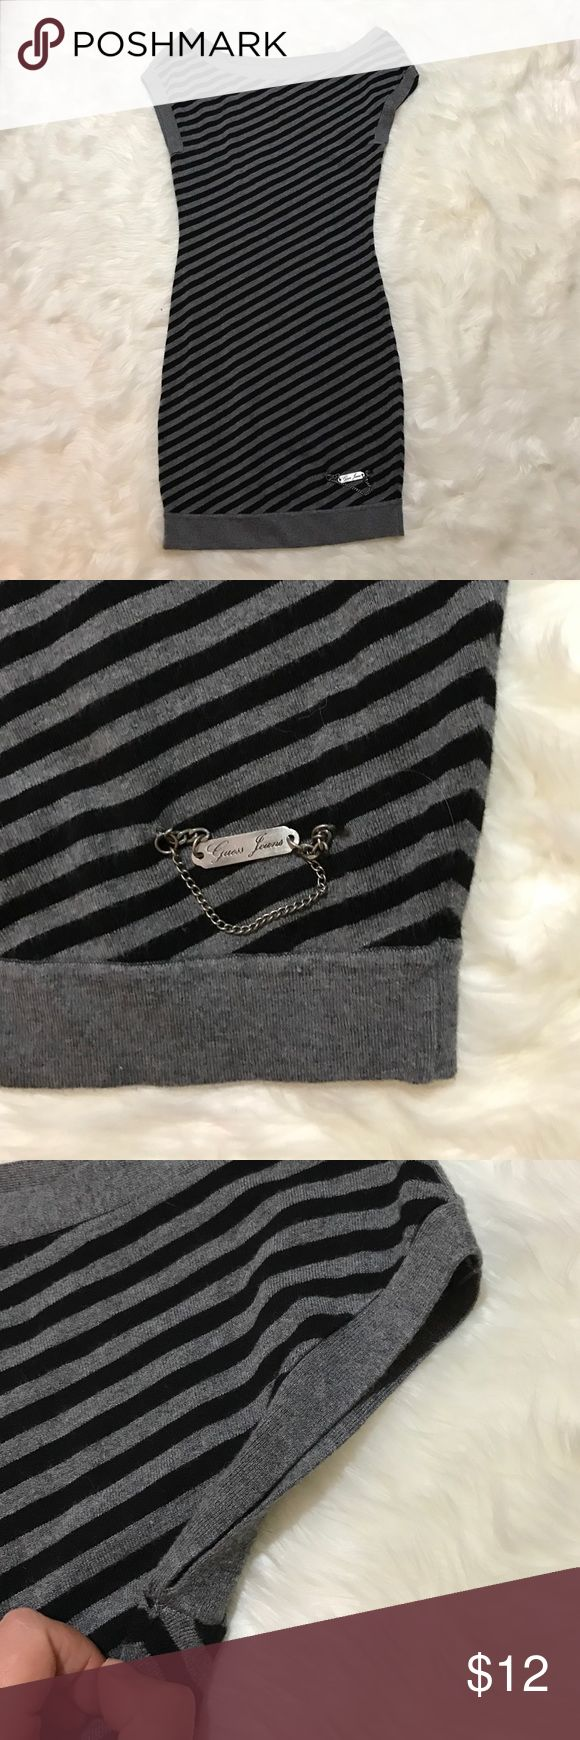 "Guess Los Angeles striped bodycon dress Guess Los Angeles black and gray bodycon dress size medium. There is a small hole in the underarm area. Please see photo. Bust 14"", length 28"" Guess Dresses Mini"